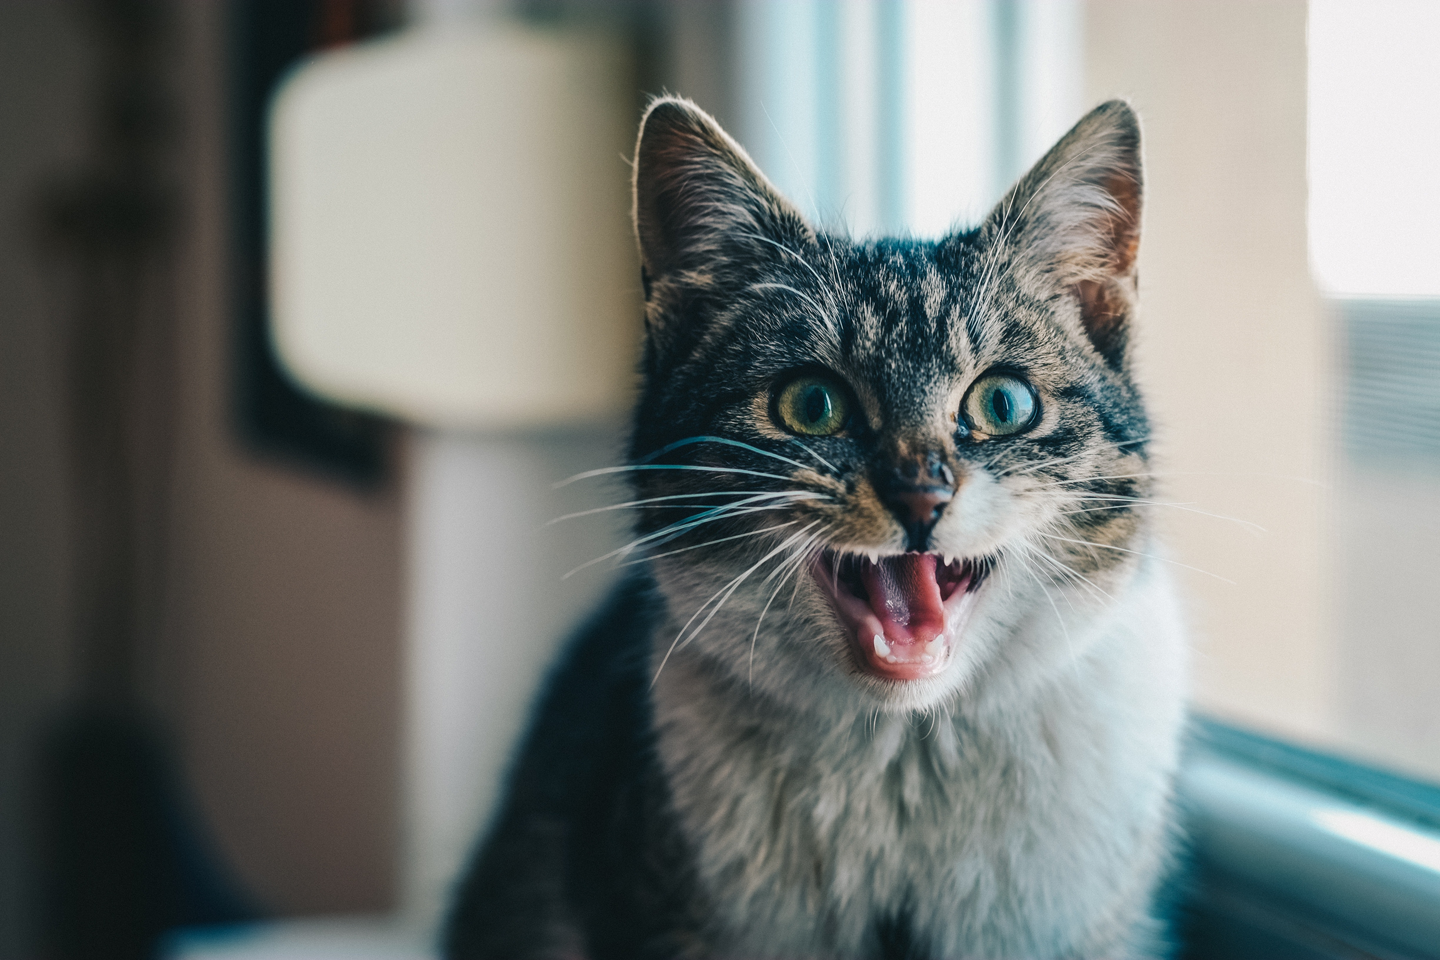 Actual picture of Zane the moment he learned developers were iterating code on production at Etsy. (Photo by Jurag Varga from Pexels/Pixabay)